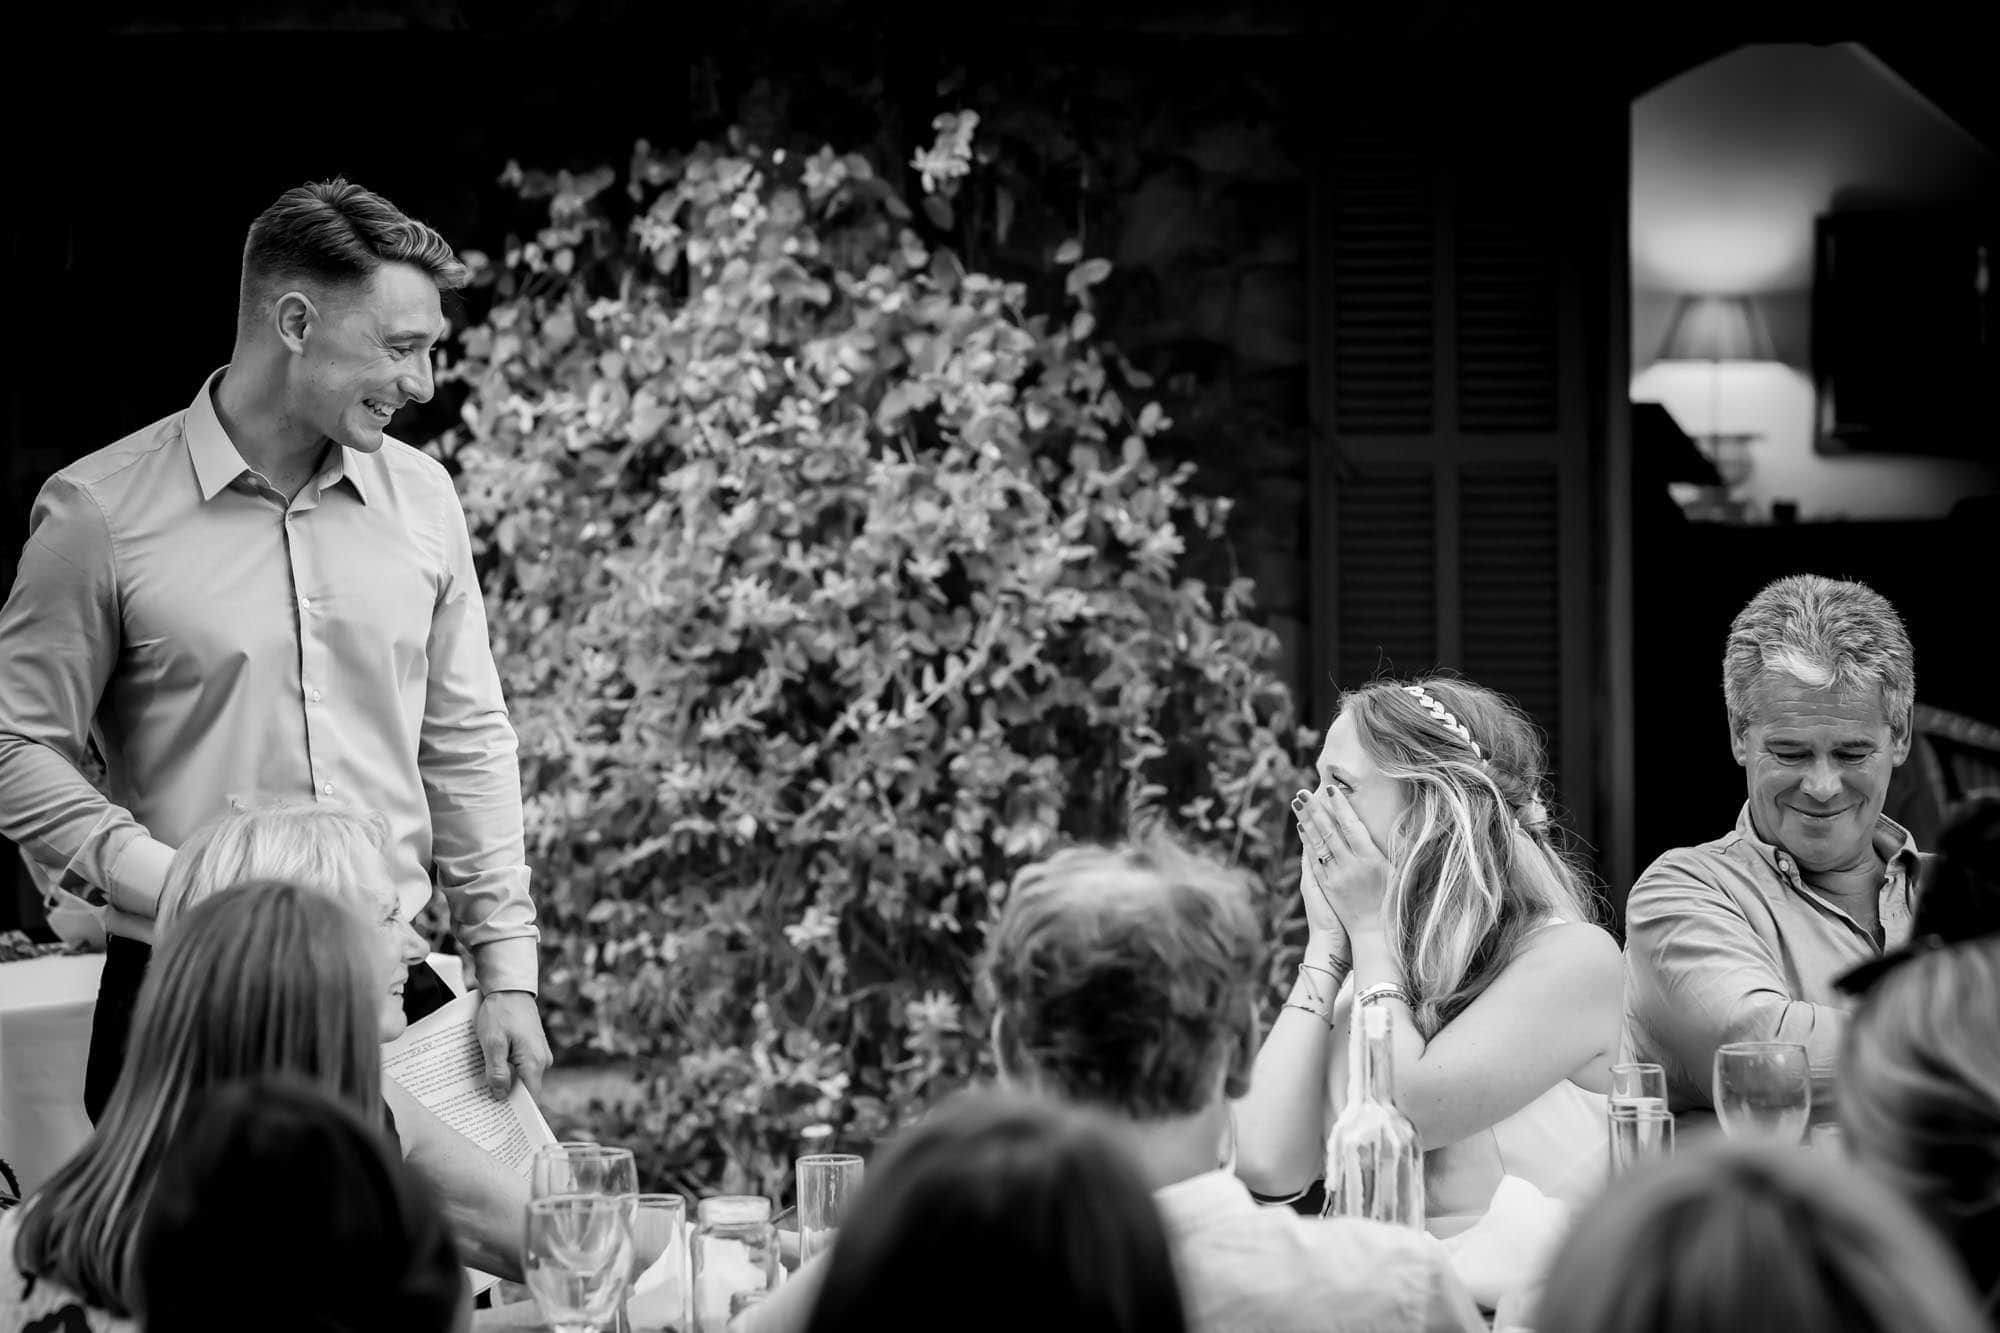 Cathy and Ben share a loving look during the wedding speeches at their Mallorca finca wedding